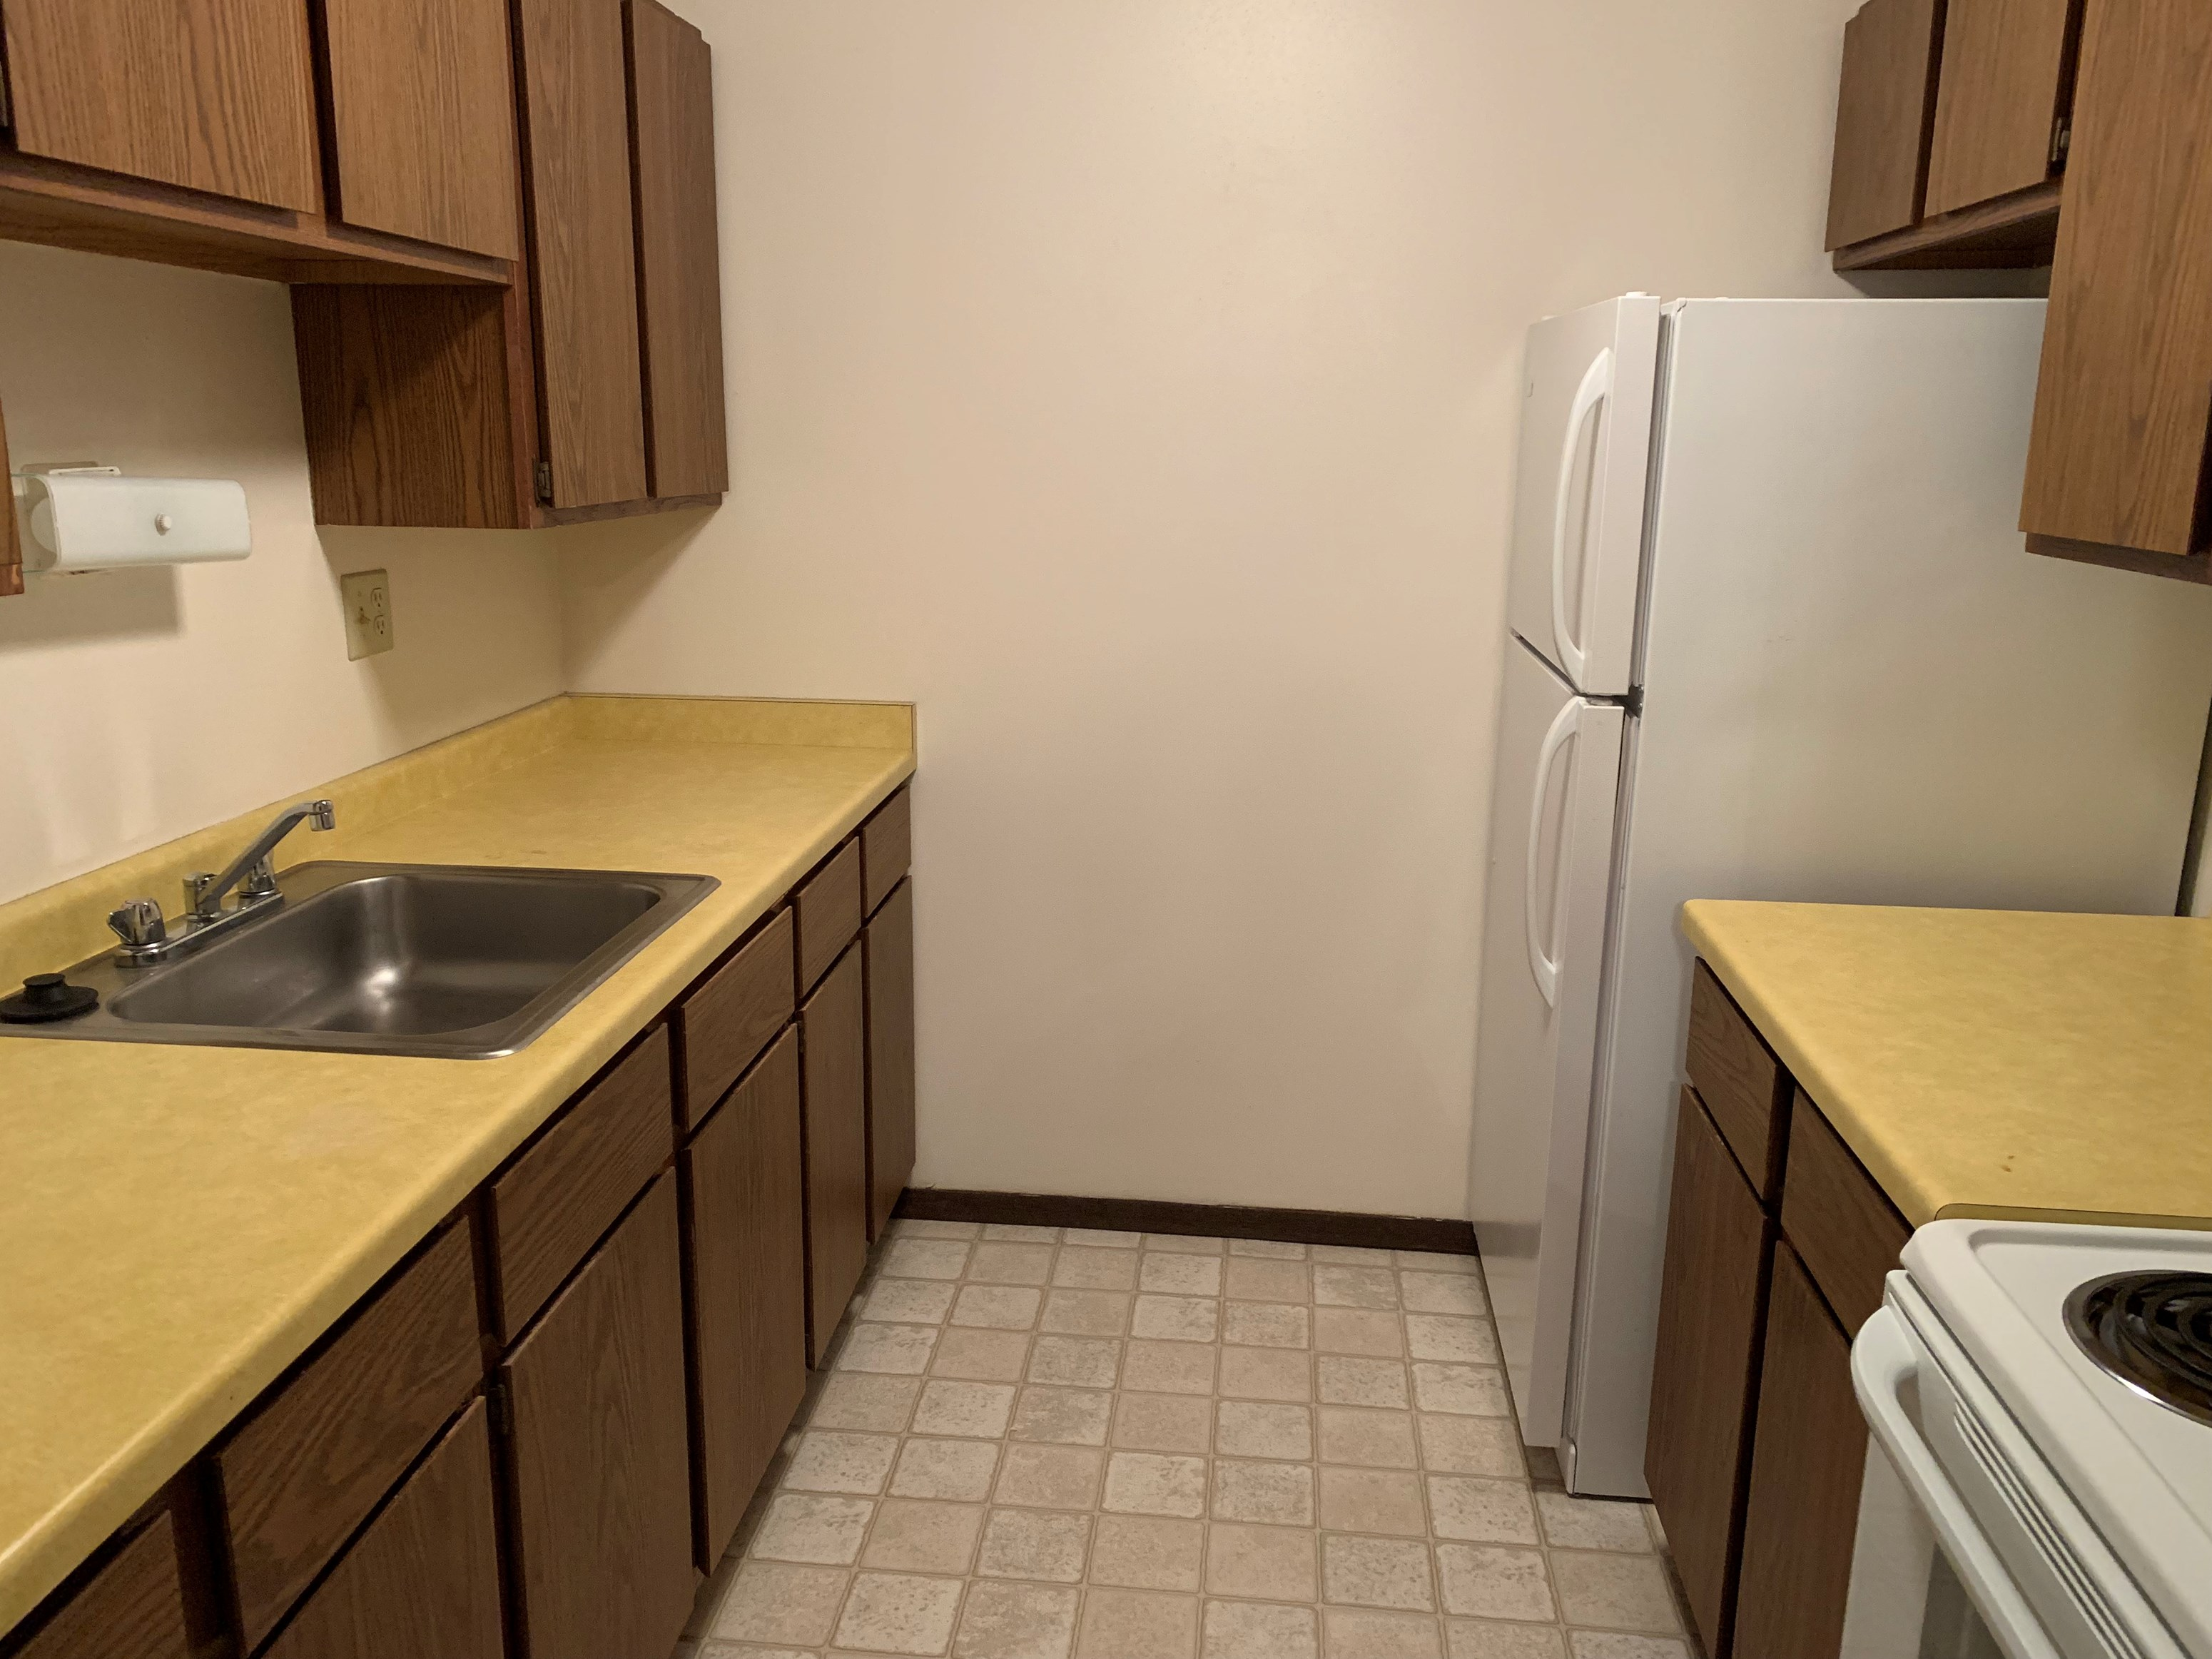 Rooms for Rent Racine, WI – Apartments, House, Commercial